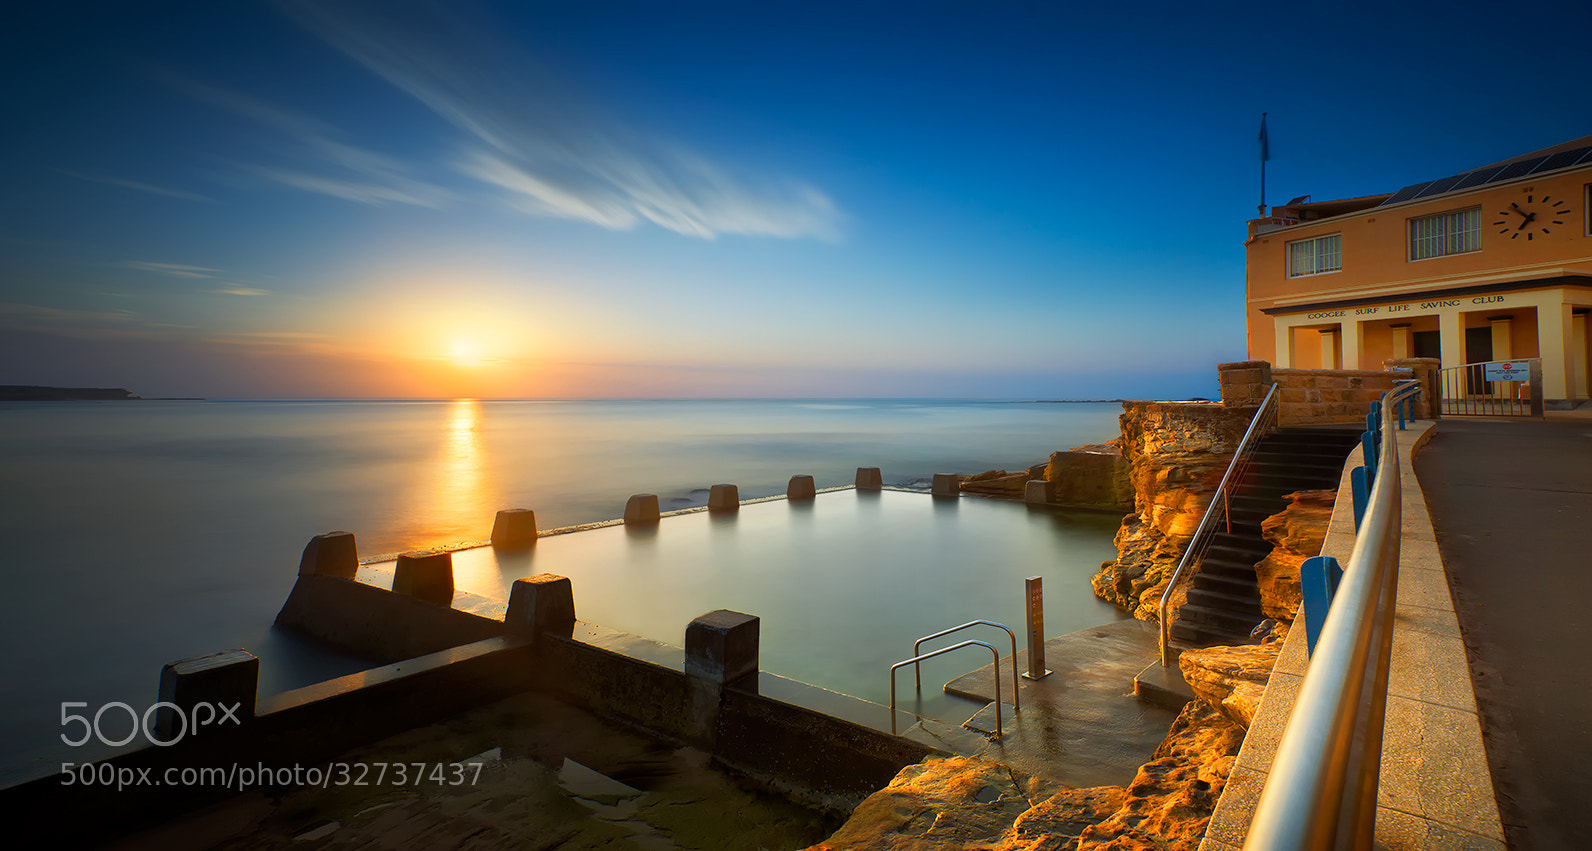 Photograph Coogee rock pool by Goff Kitsawad on 500px